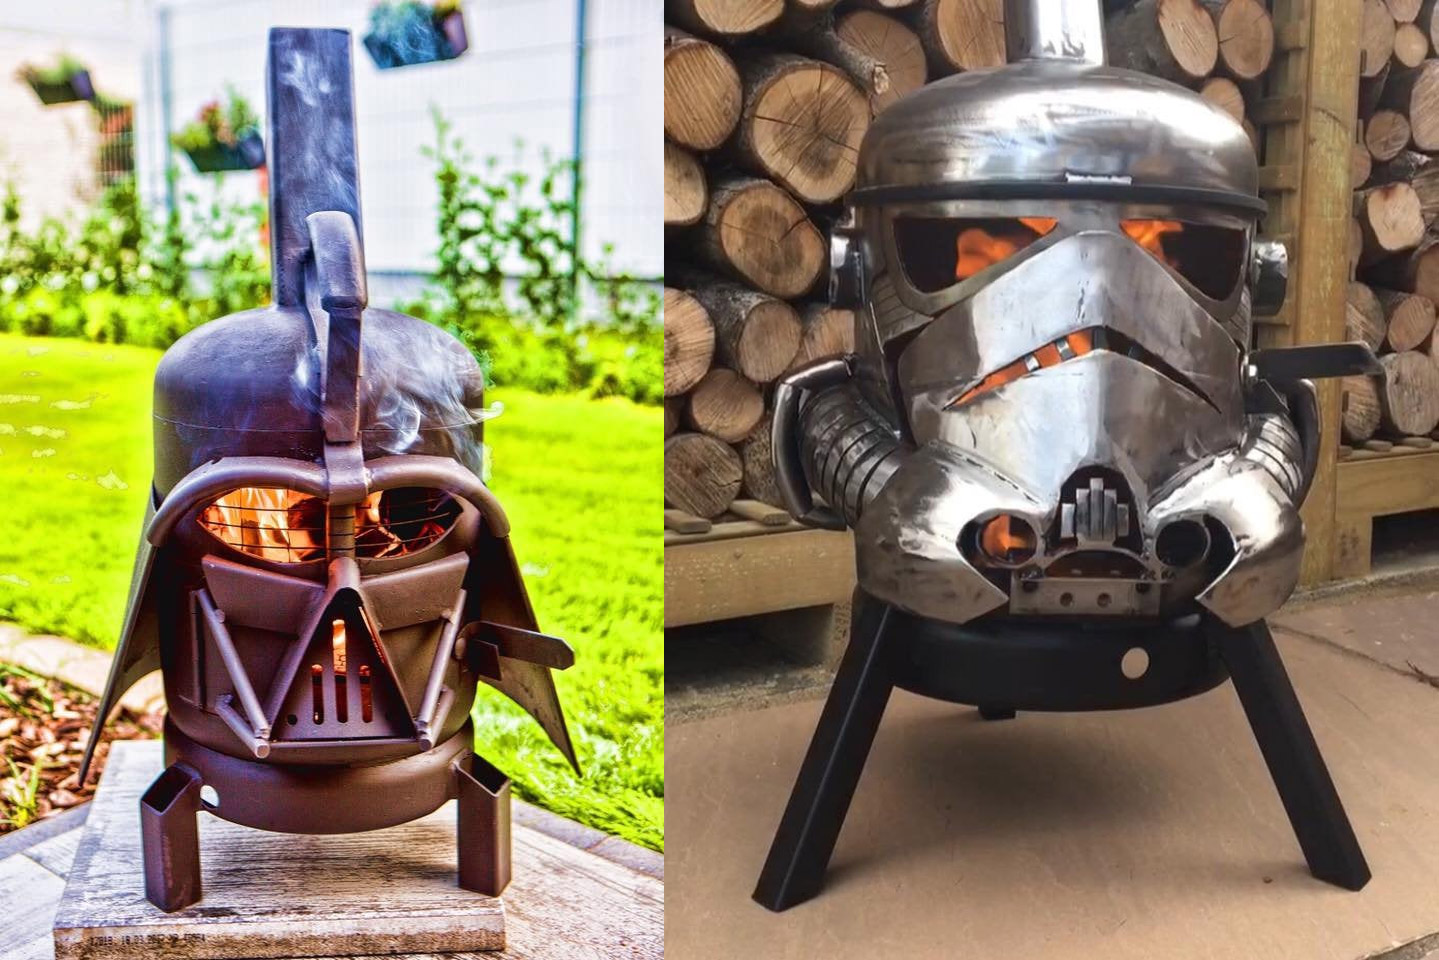 Darth Vader Fire Pit - Stormtrooper Fire Pit